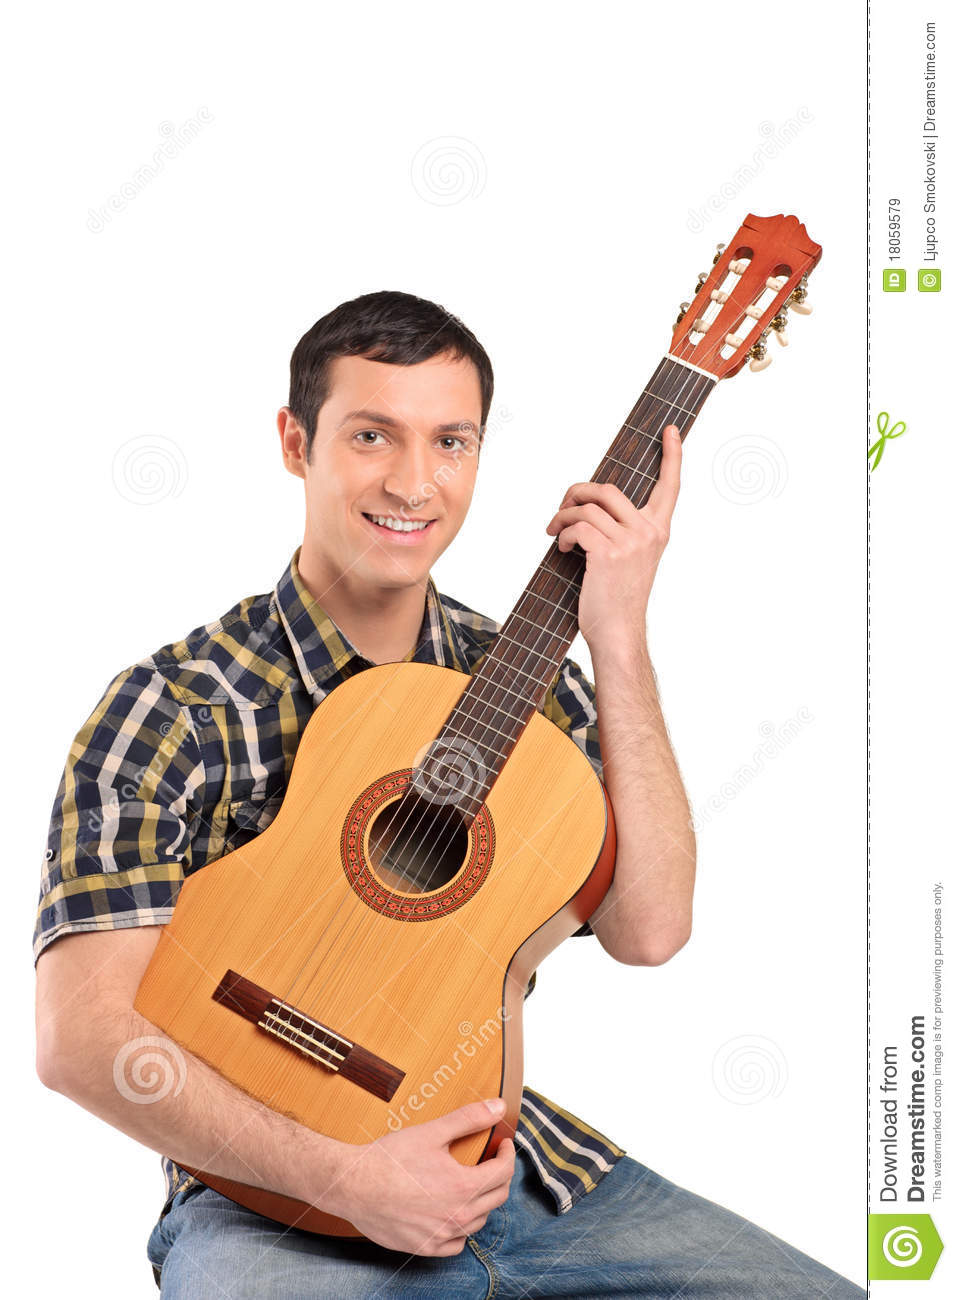 Guitar playing dude fucks a hot country girl